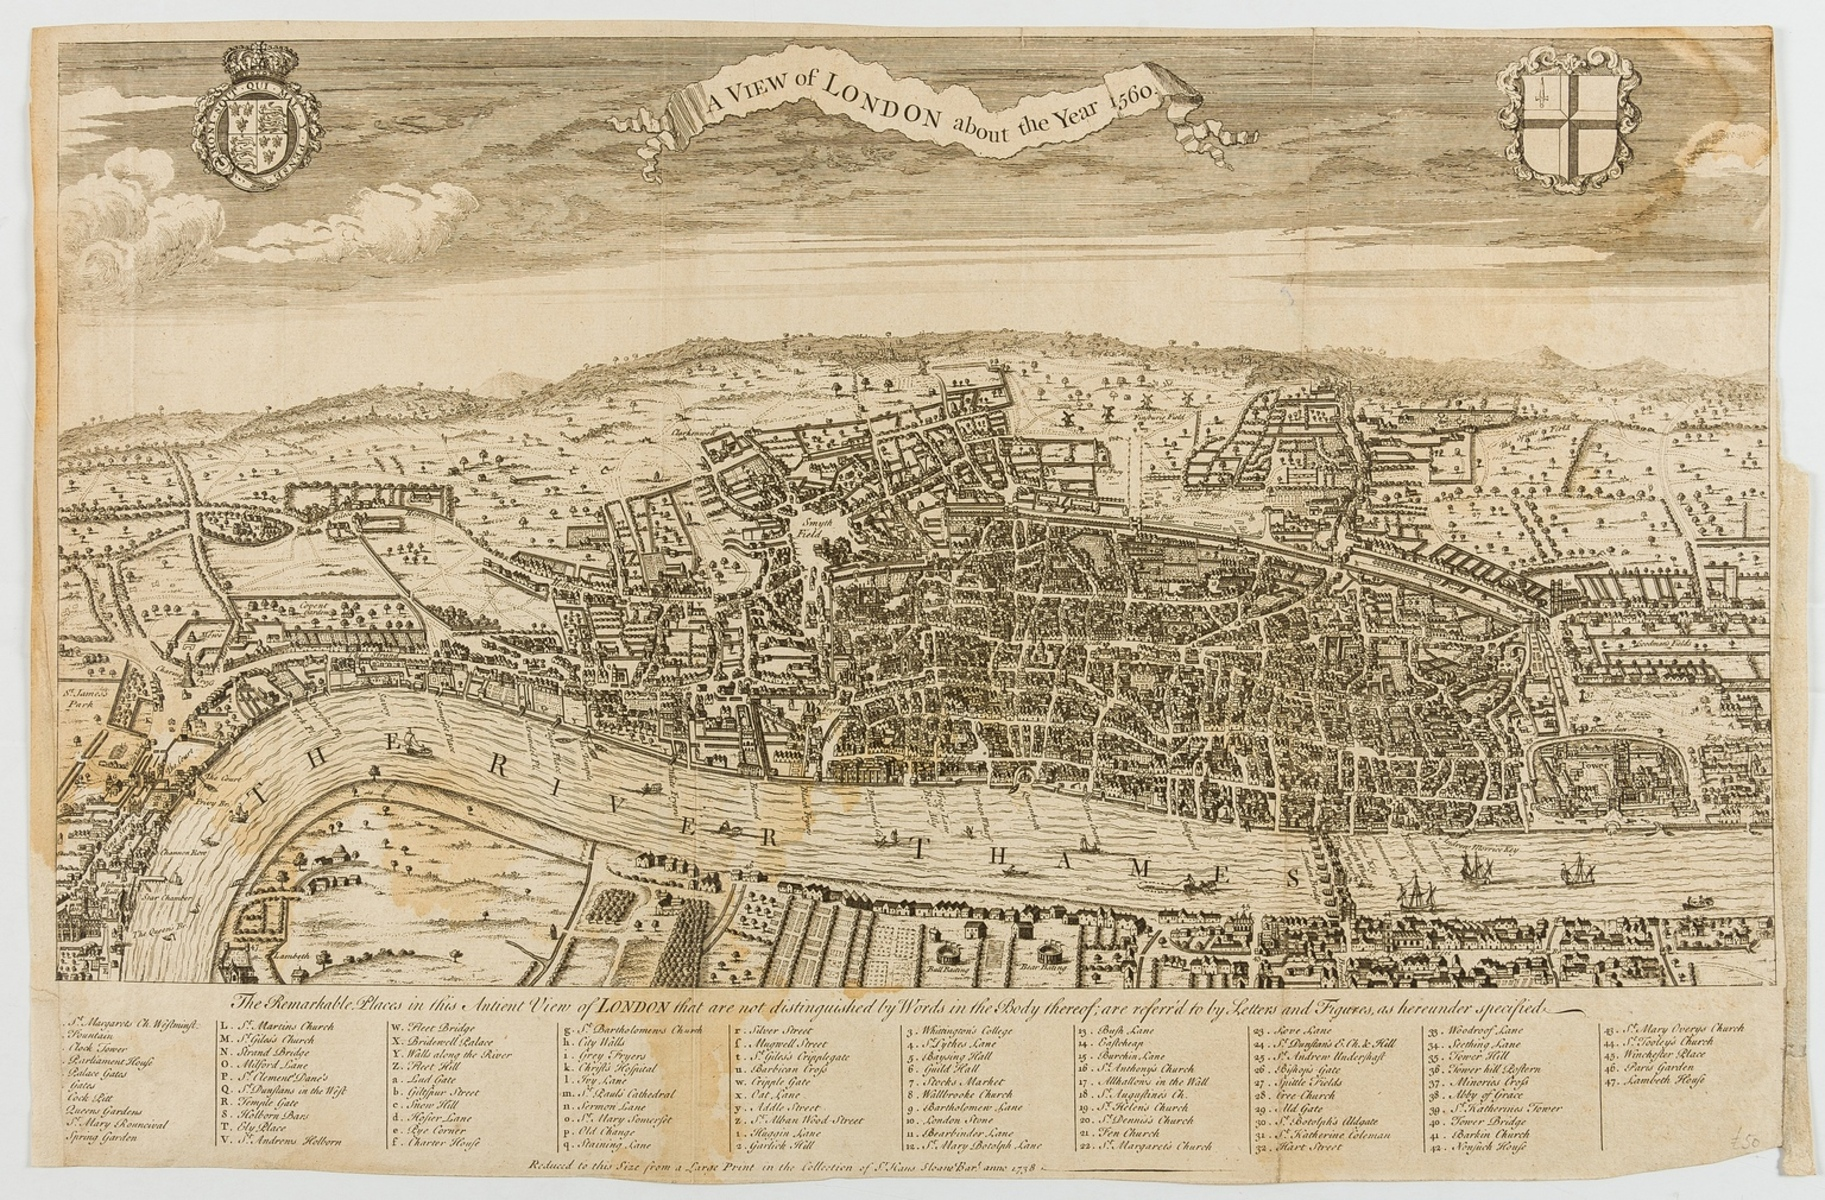 London.- Maitland (William) A View of London about the Year 1560, engraving, 1738; and two others …